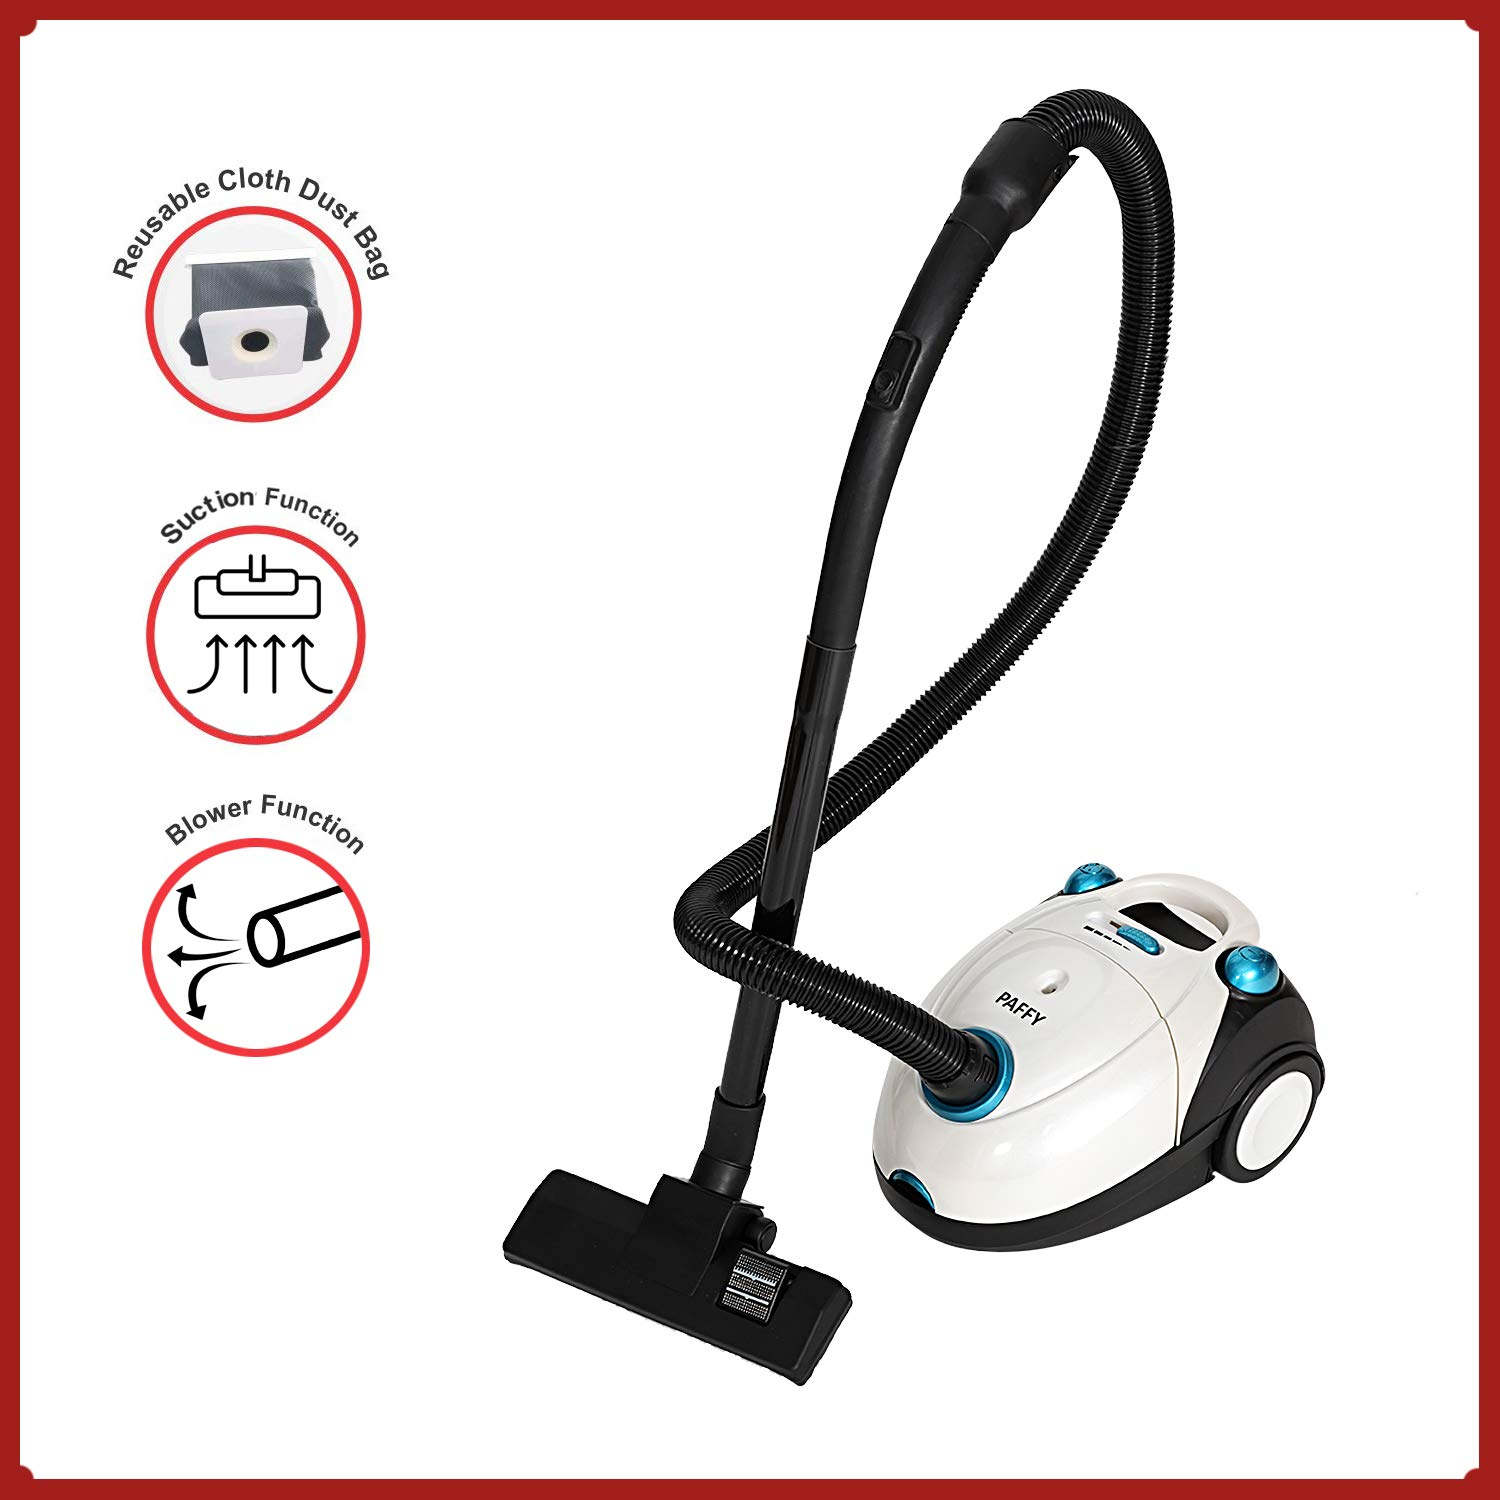 Vacuum Cleaner-1200W with Power Suction, Blower Function, Low Sound